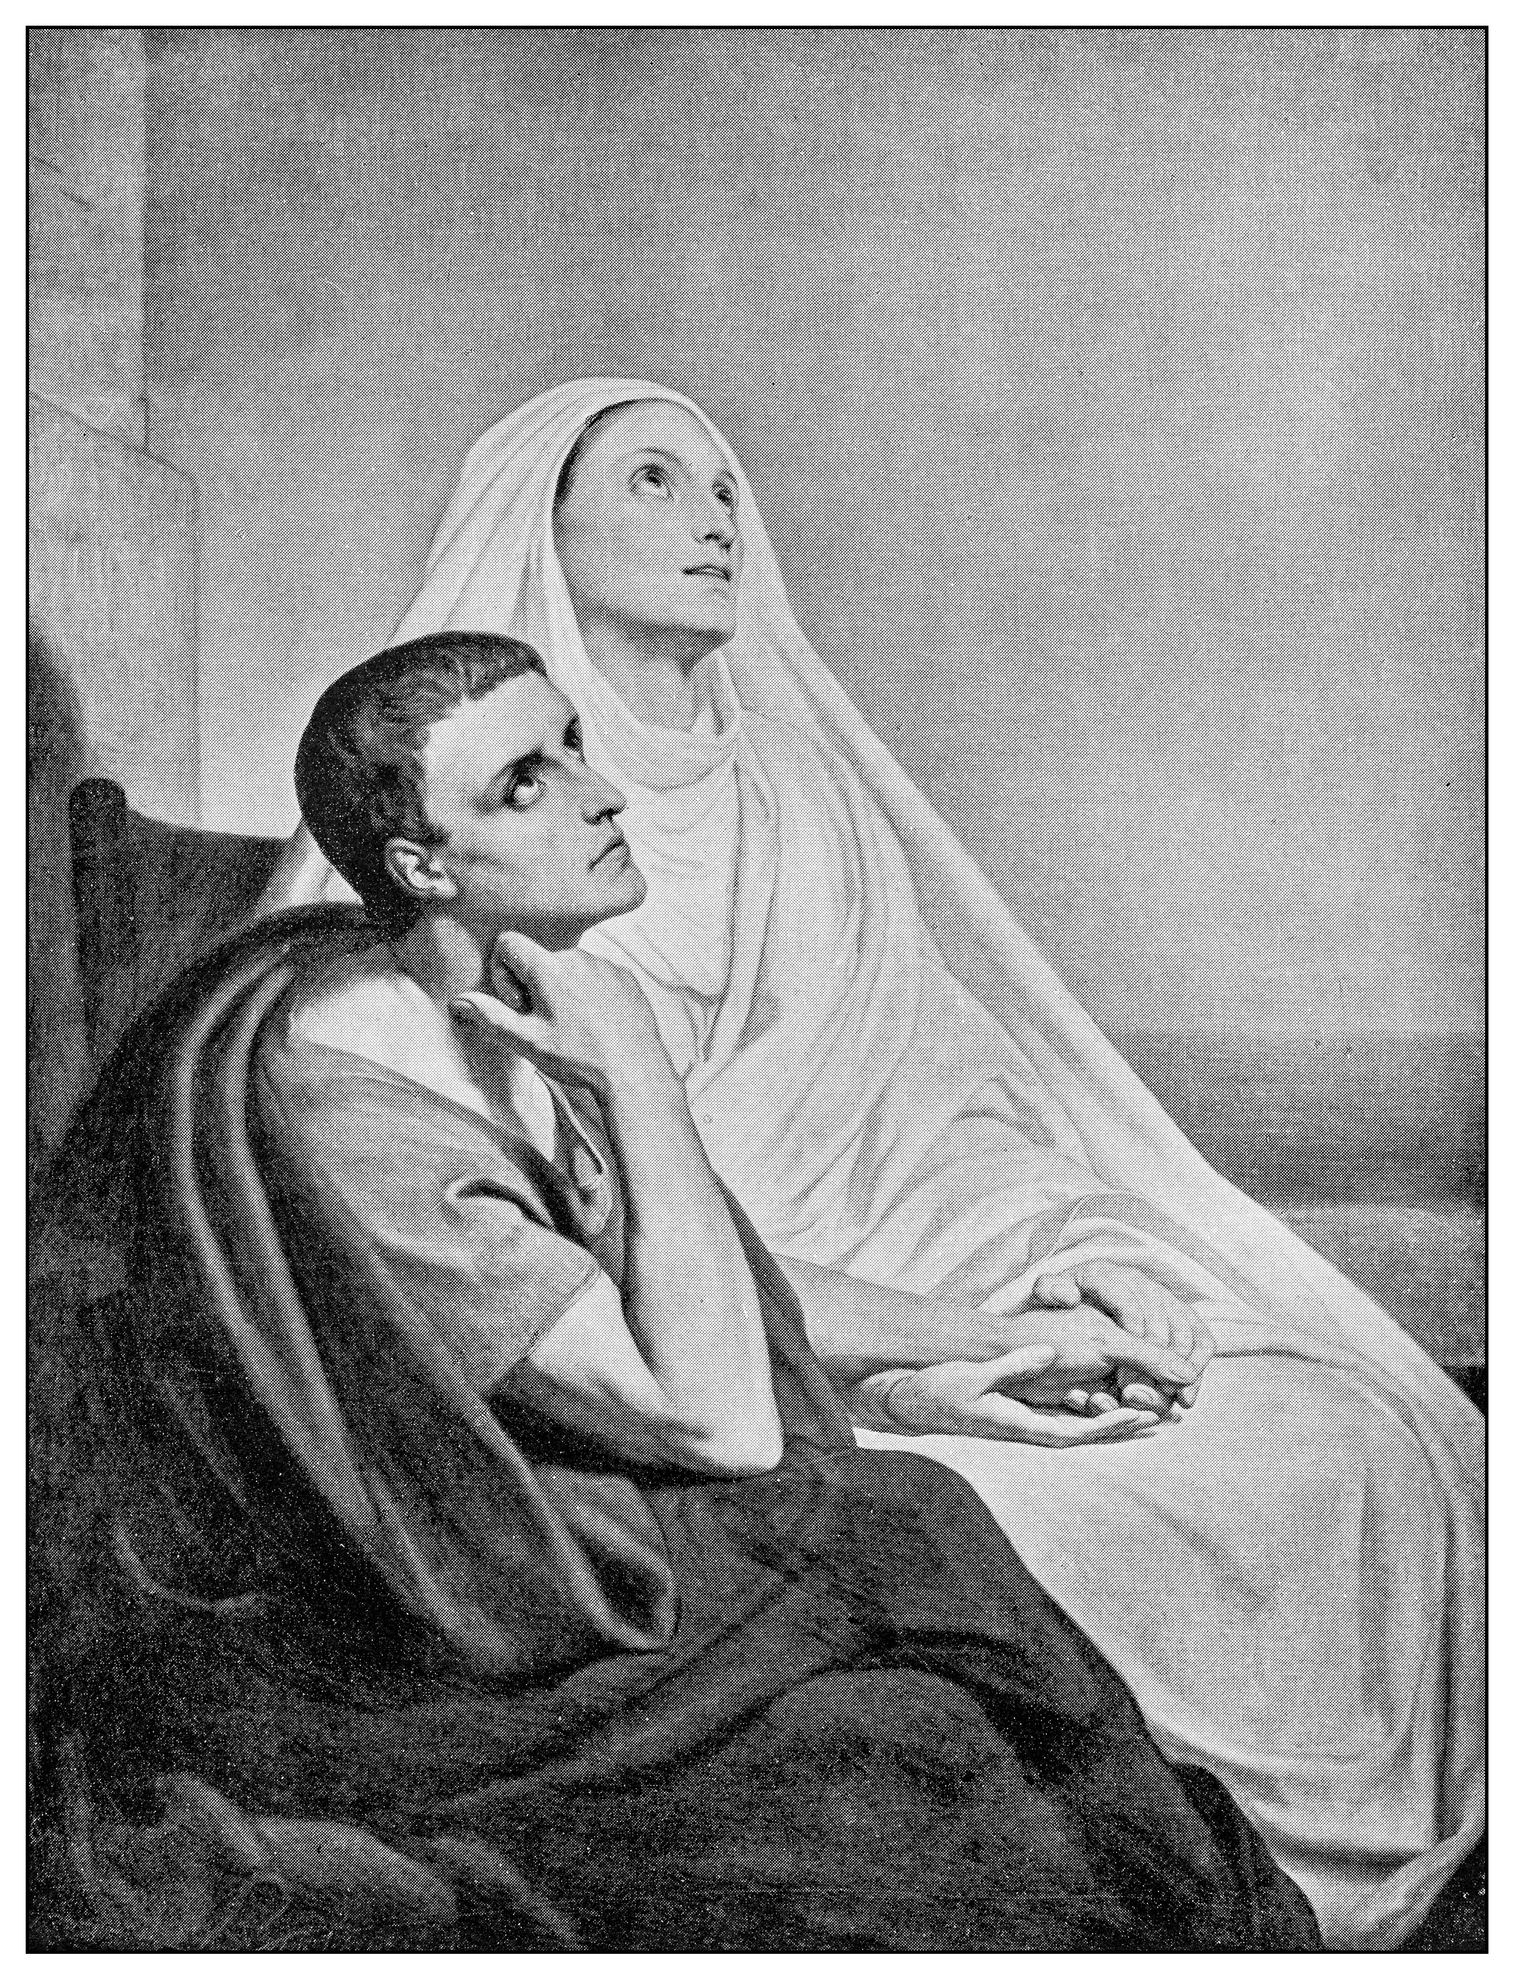 Antique illustration of important people of the past: St Augustine of Hippo and his mother, St Monica